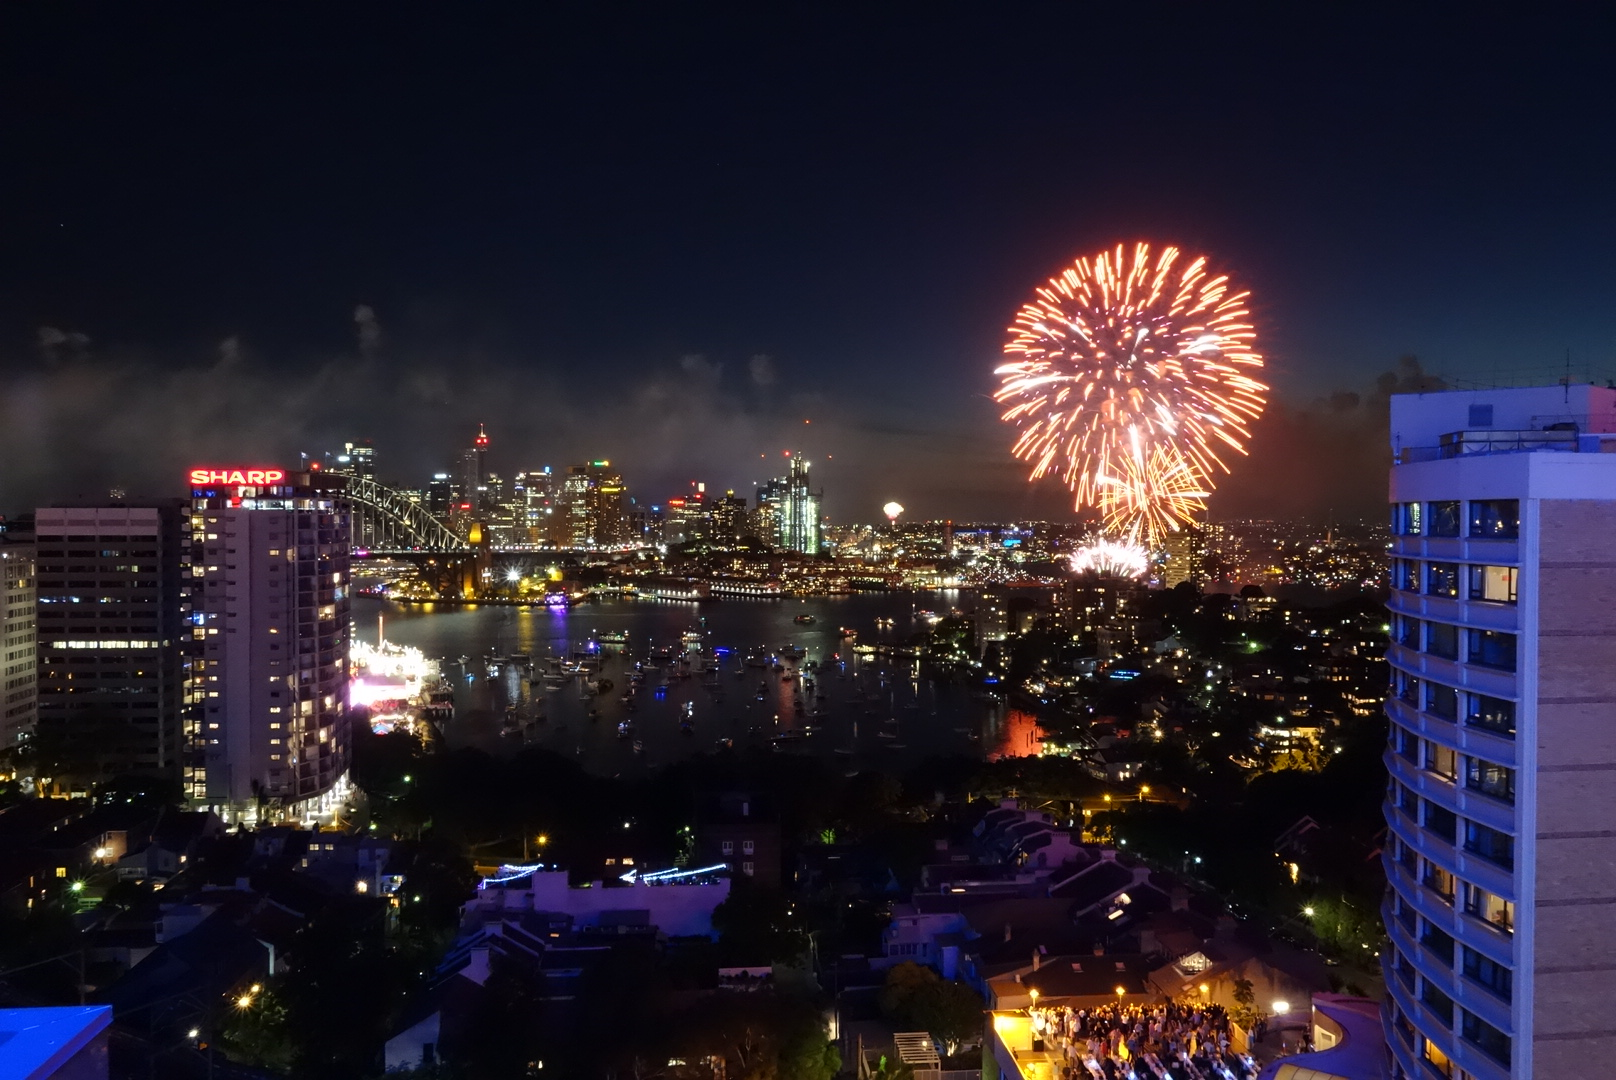 New Year's Eve fireworks, 9 pm show